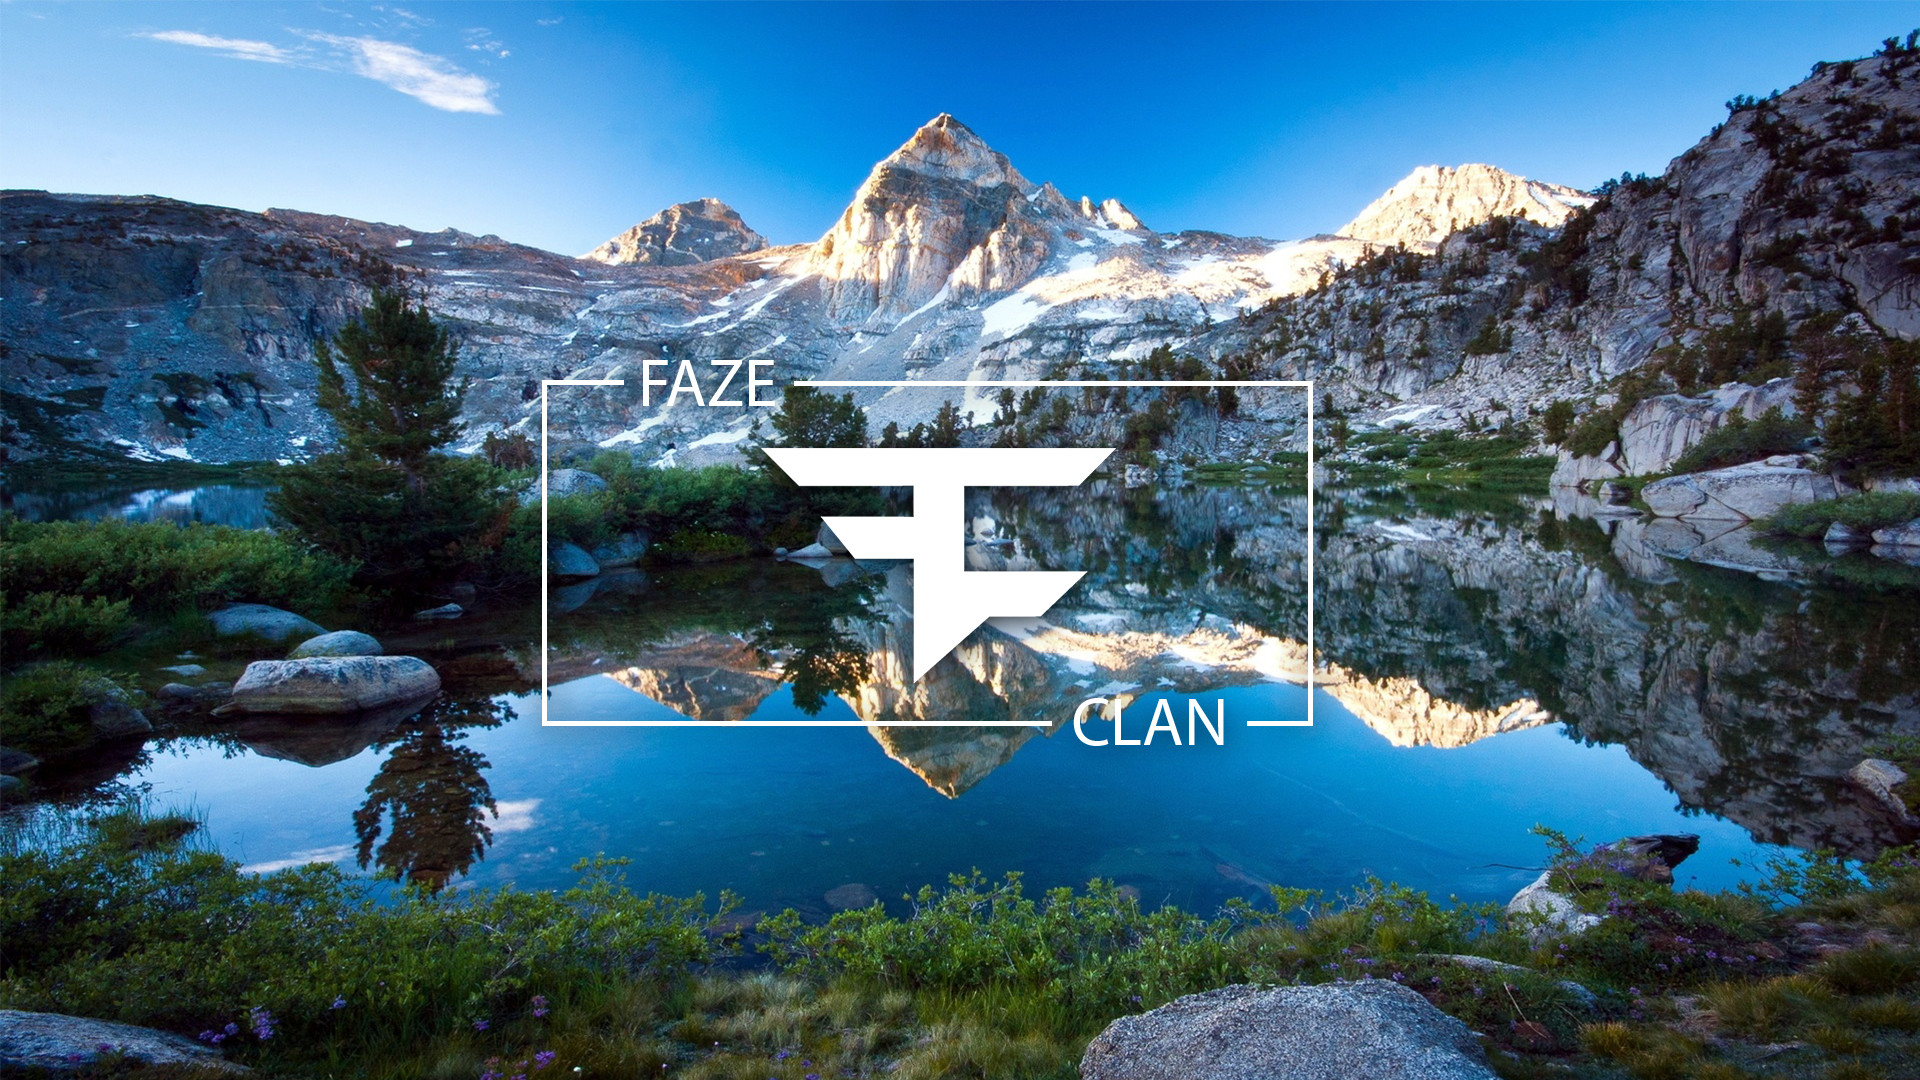 Res: 1920x1080, FaZe Wallpapers by QuantumProductions FaZe Wallpapers by QuantumProductions